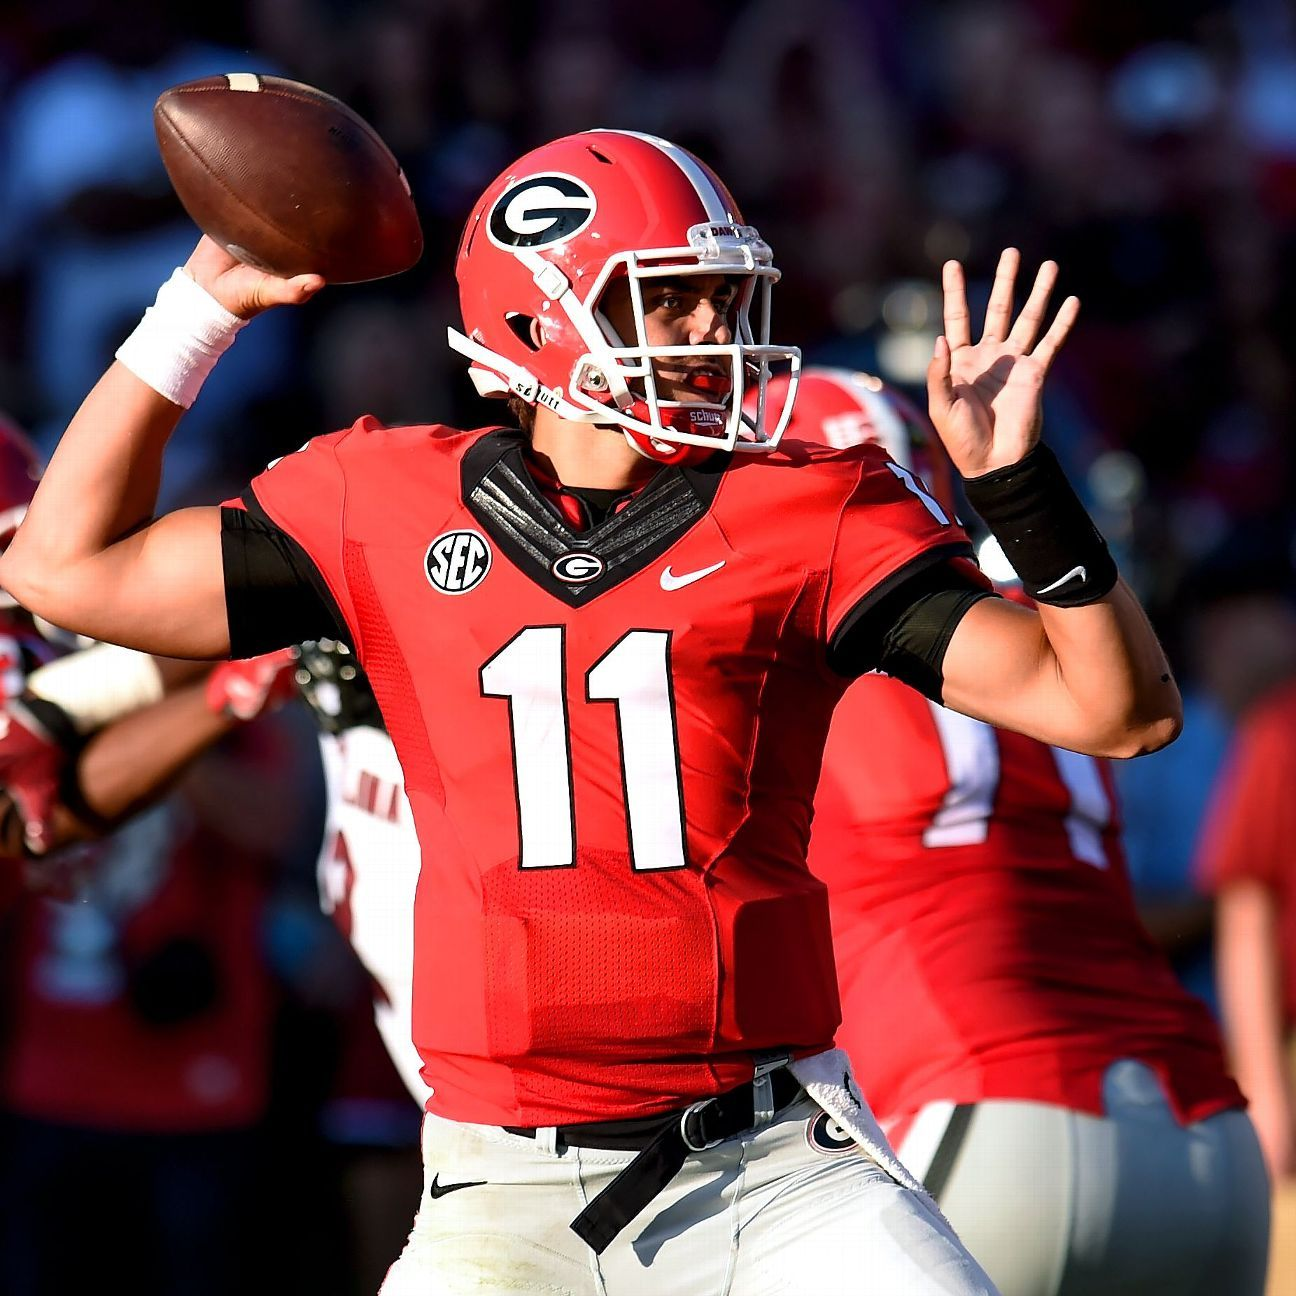 Greyson Lambert sets NCAA record in rout of